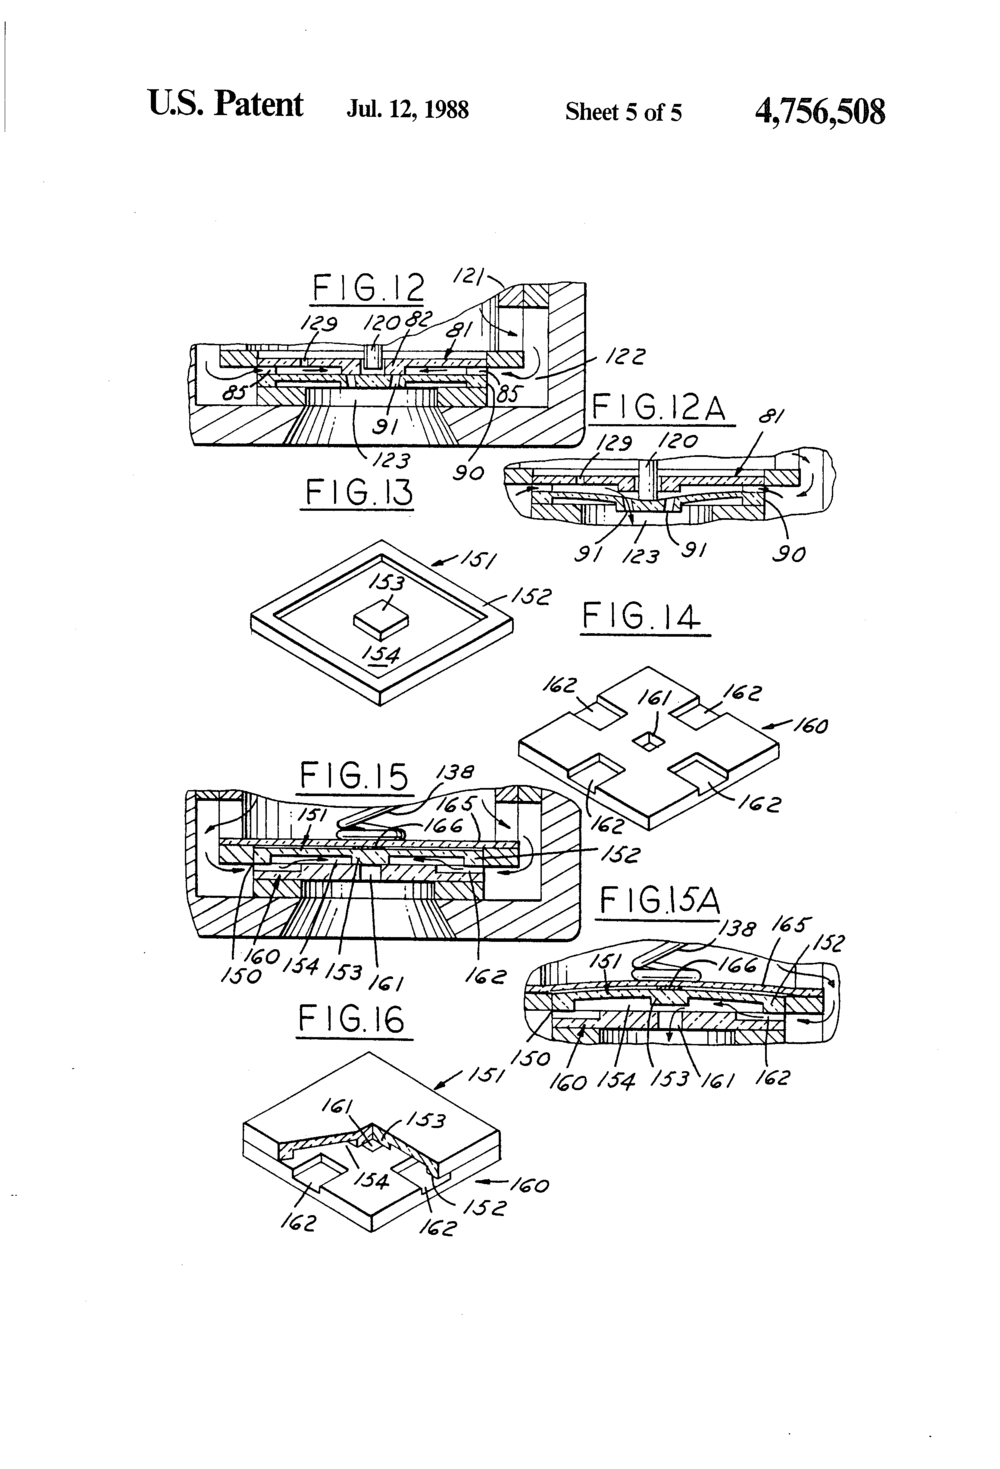 """Silicon Valve""   Patent number 4,756,508      Filing date: Nov 13,1986, Issue date: Jul 12, 1988 Inventors Joseph M. Giachino, James W. Kress"